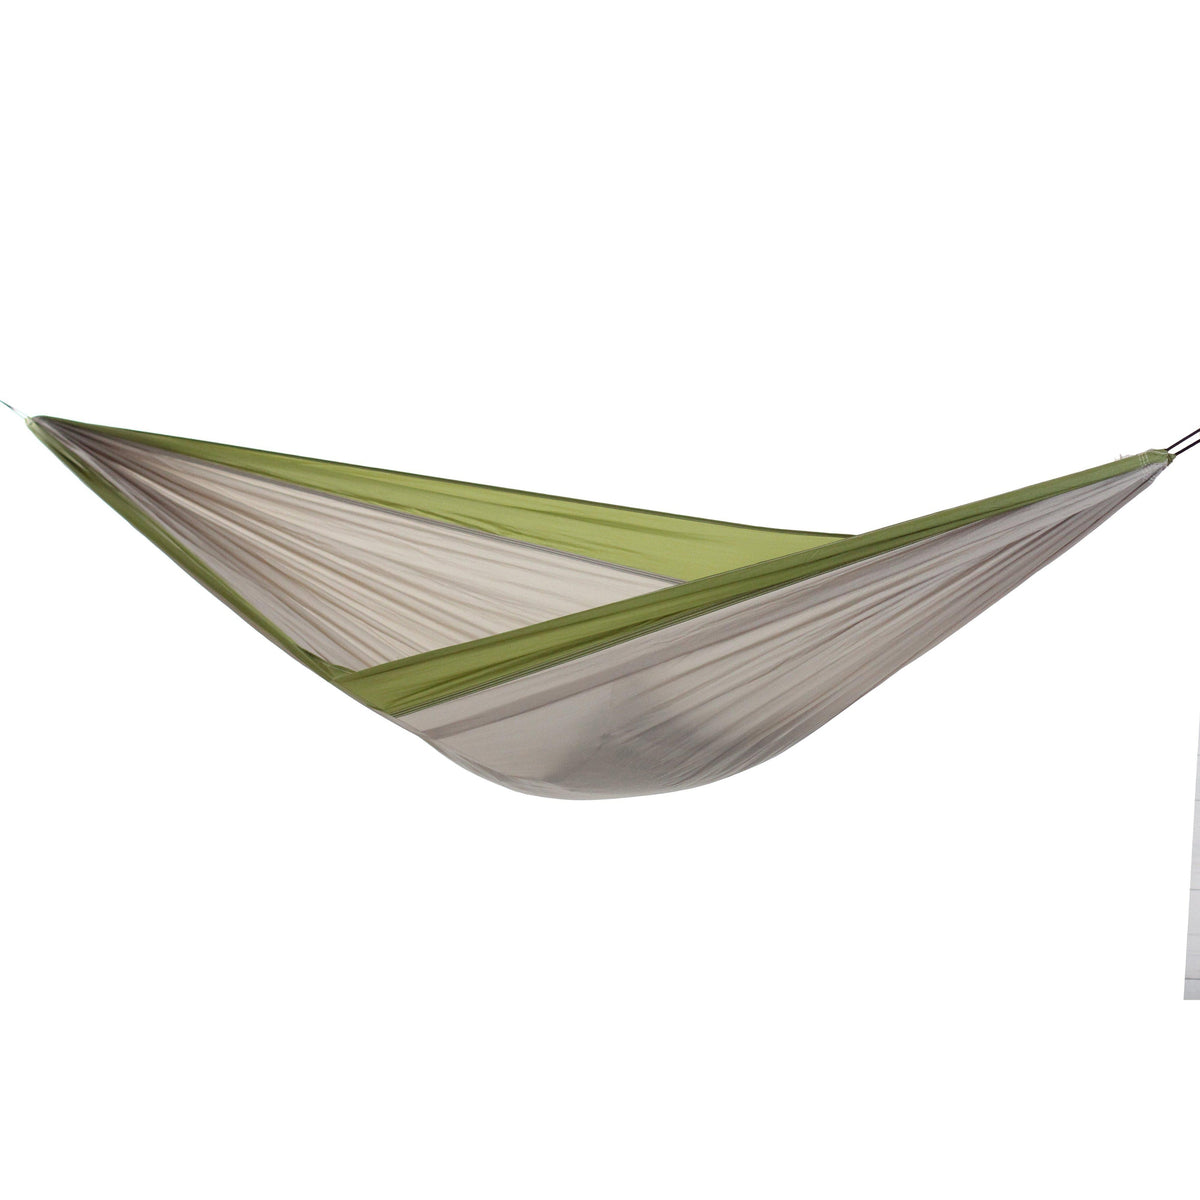 Easy Traveller Hammock, Fern Green, from Byer of Maine